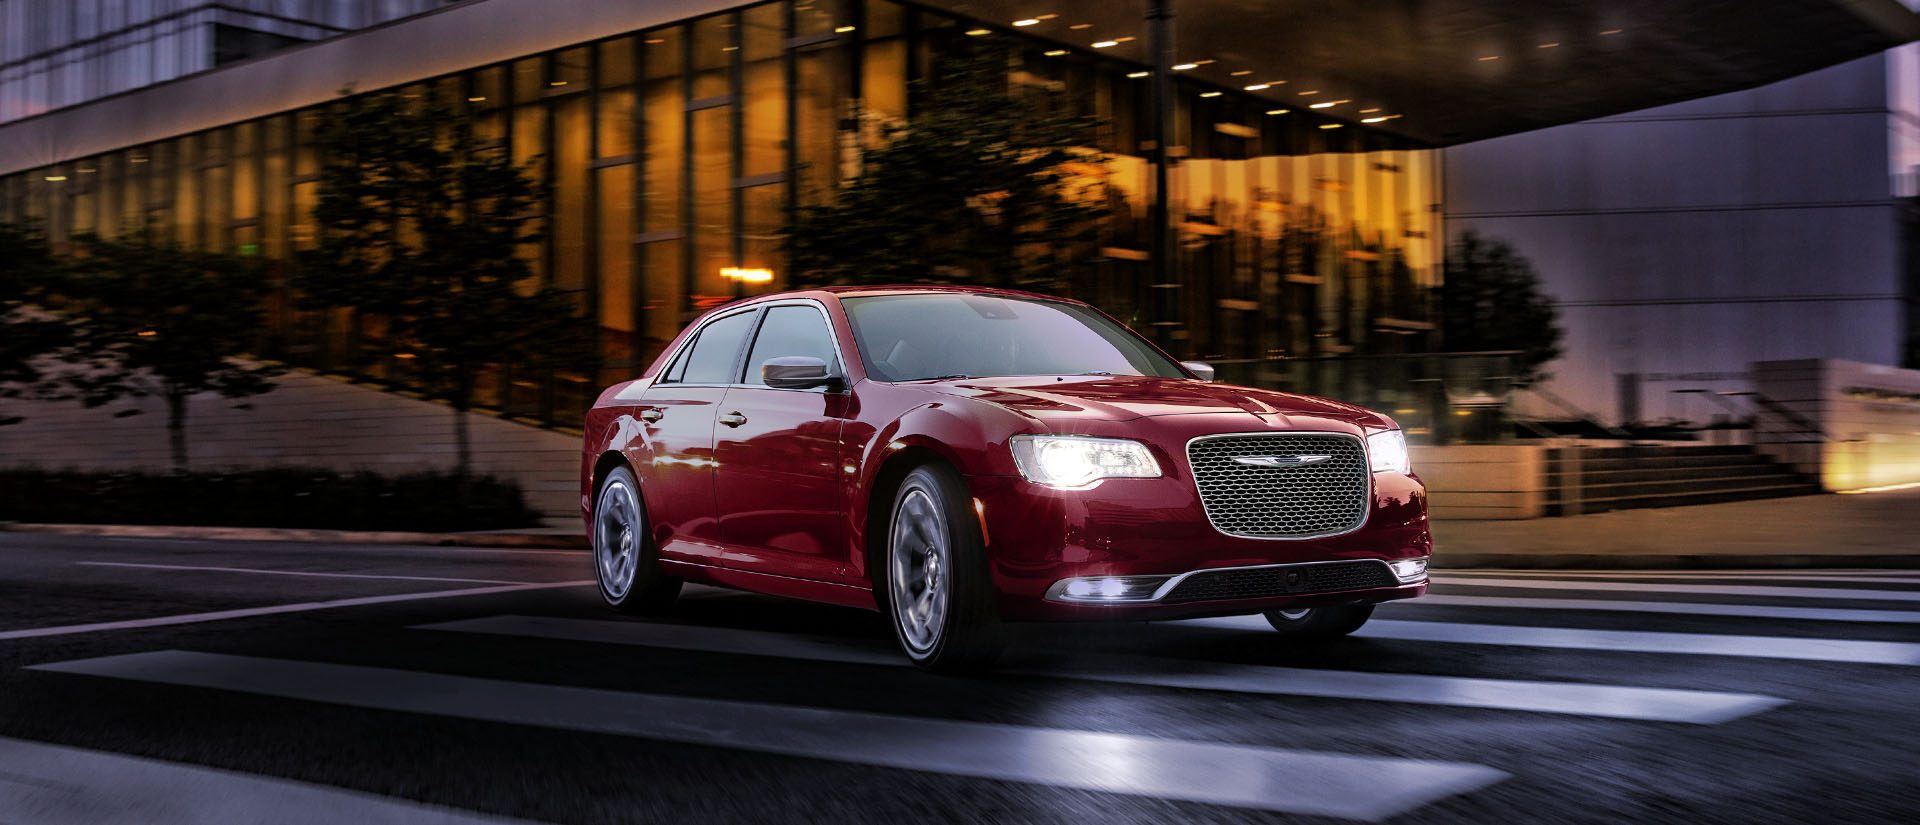 2018-chrysler-300-performance-hero1